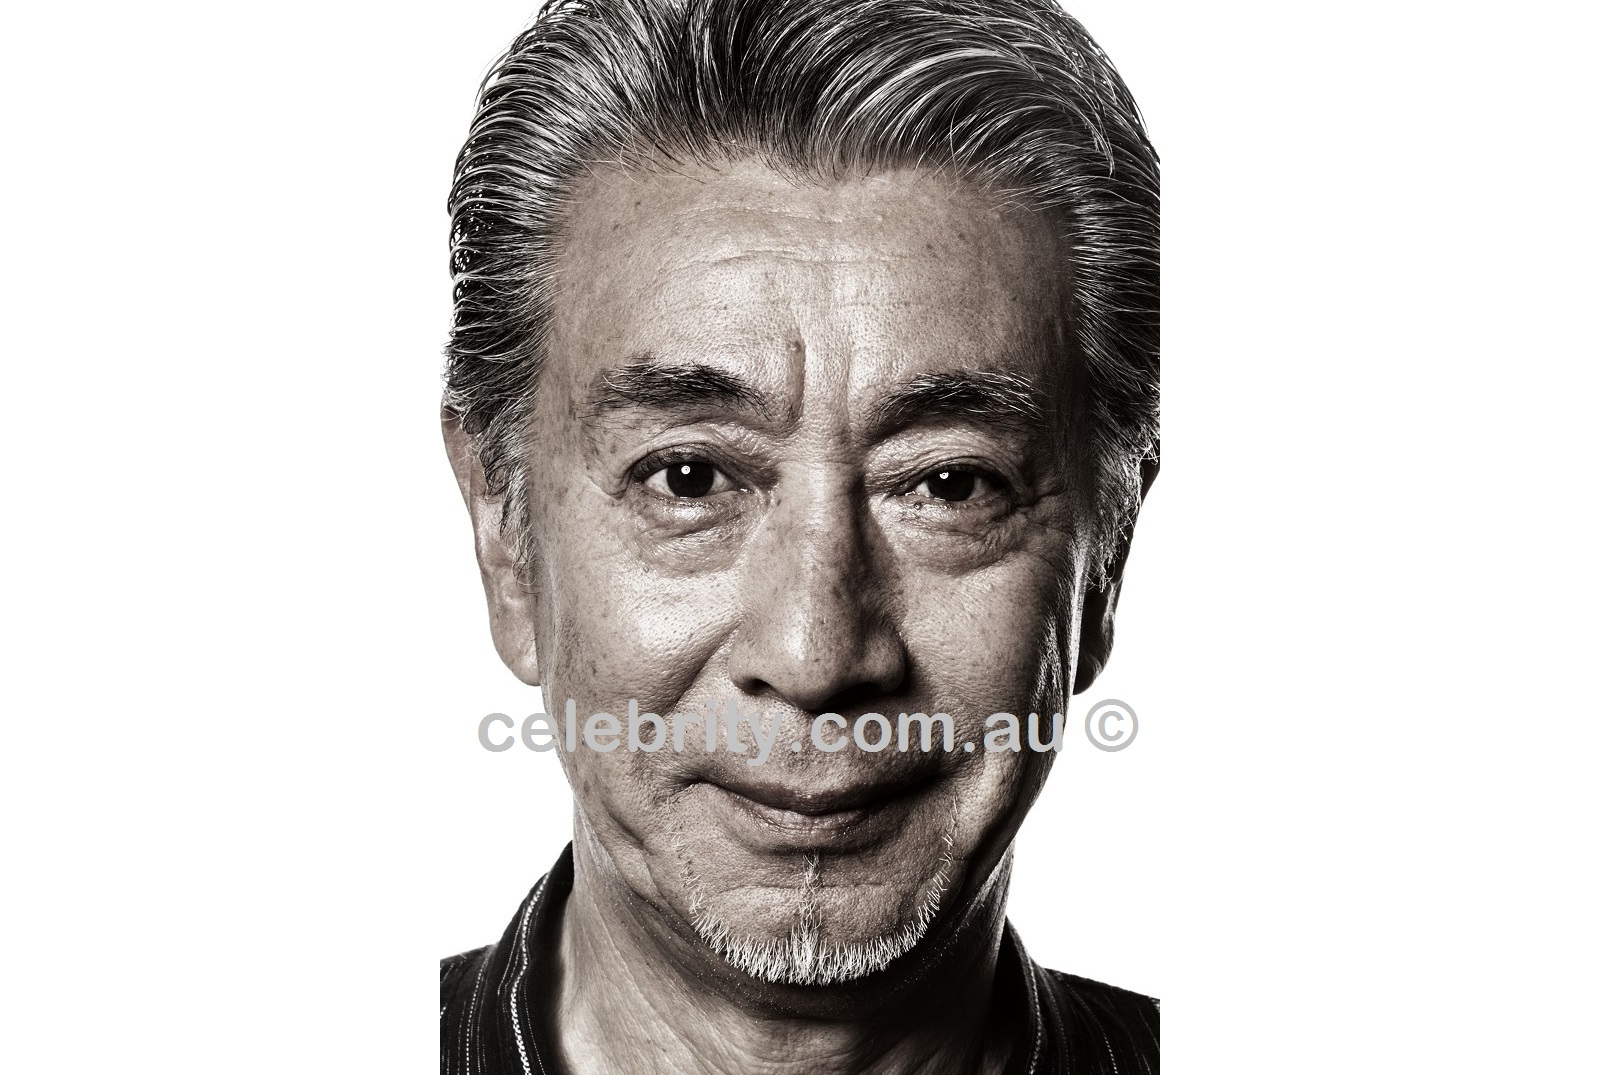 Junji Takada Portrait resized to 30% landscape 1 copyrights.jpg